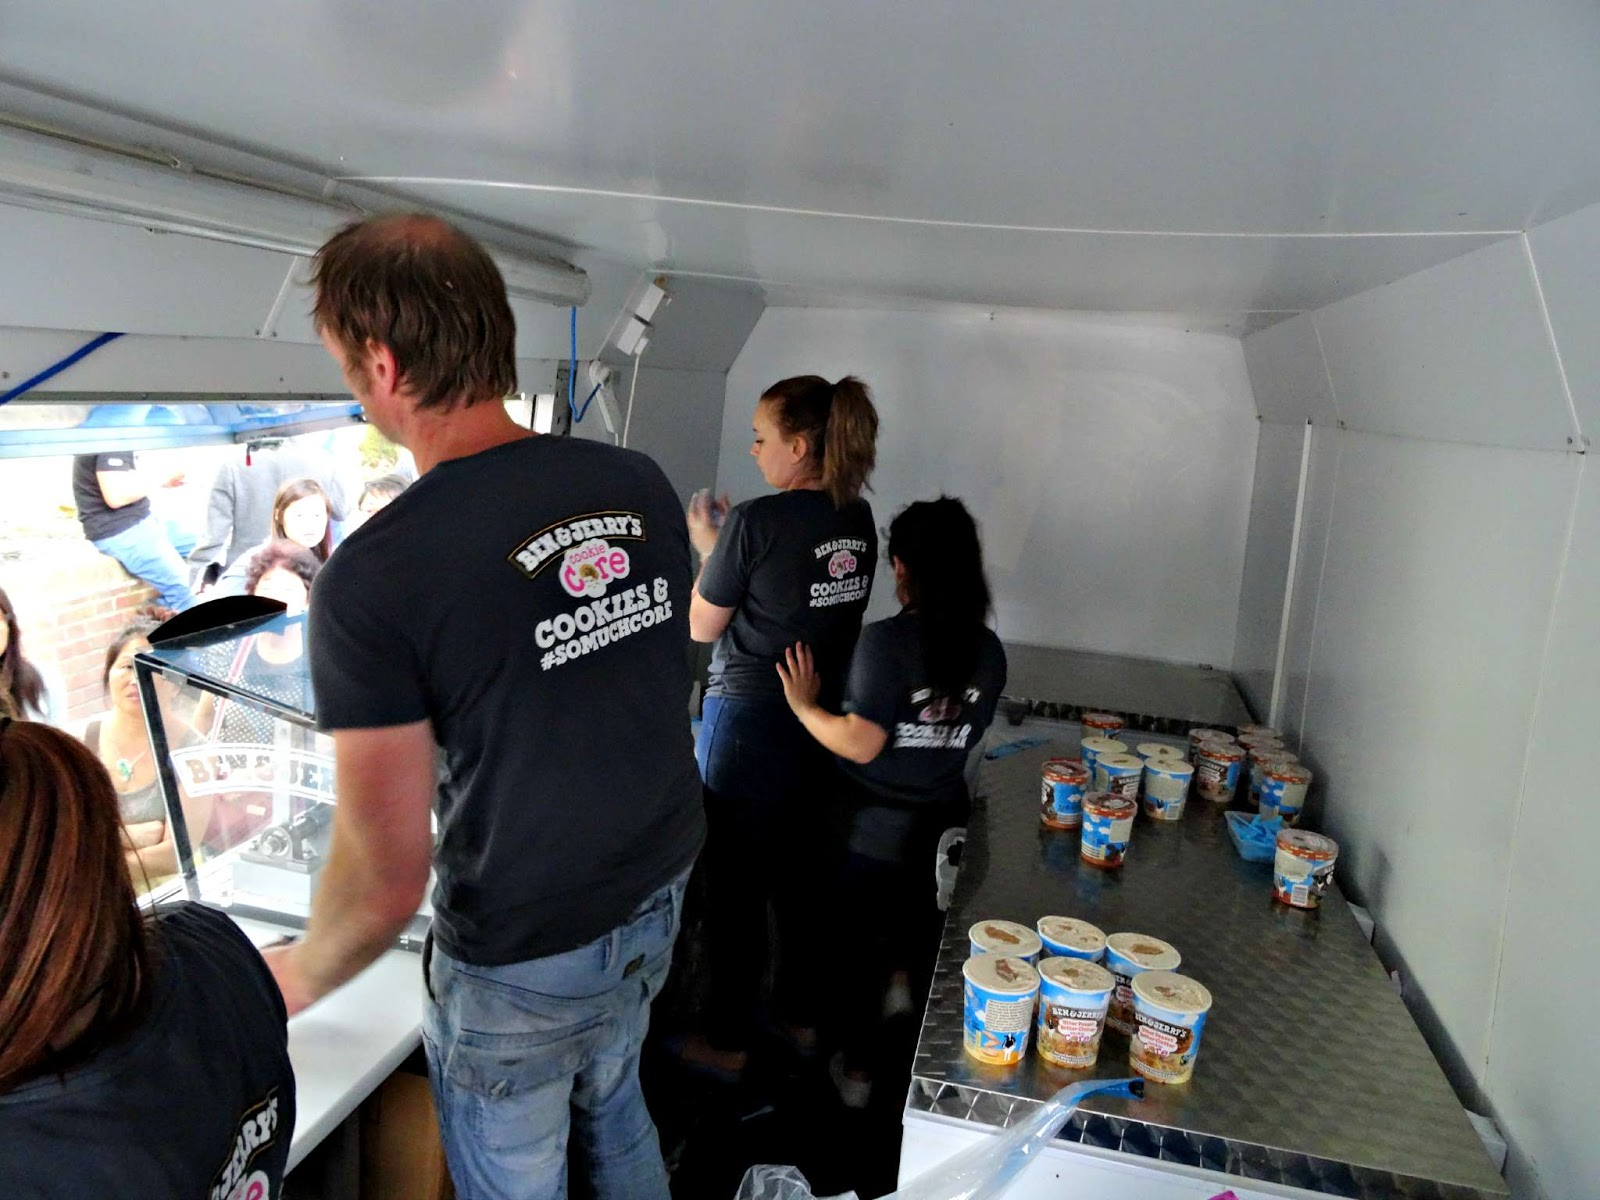 inside the ben and jerry's ice cream van